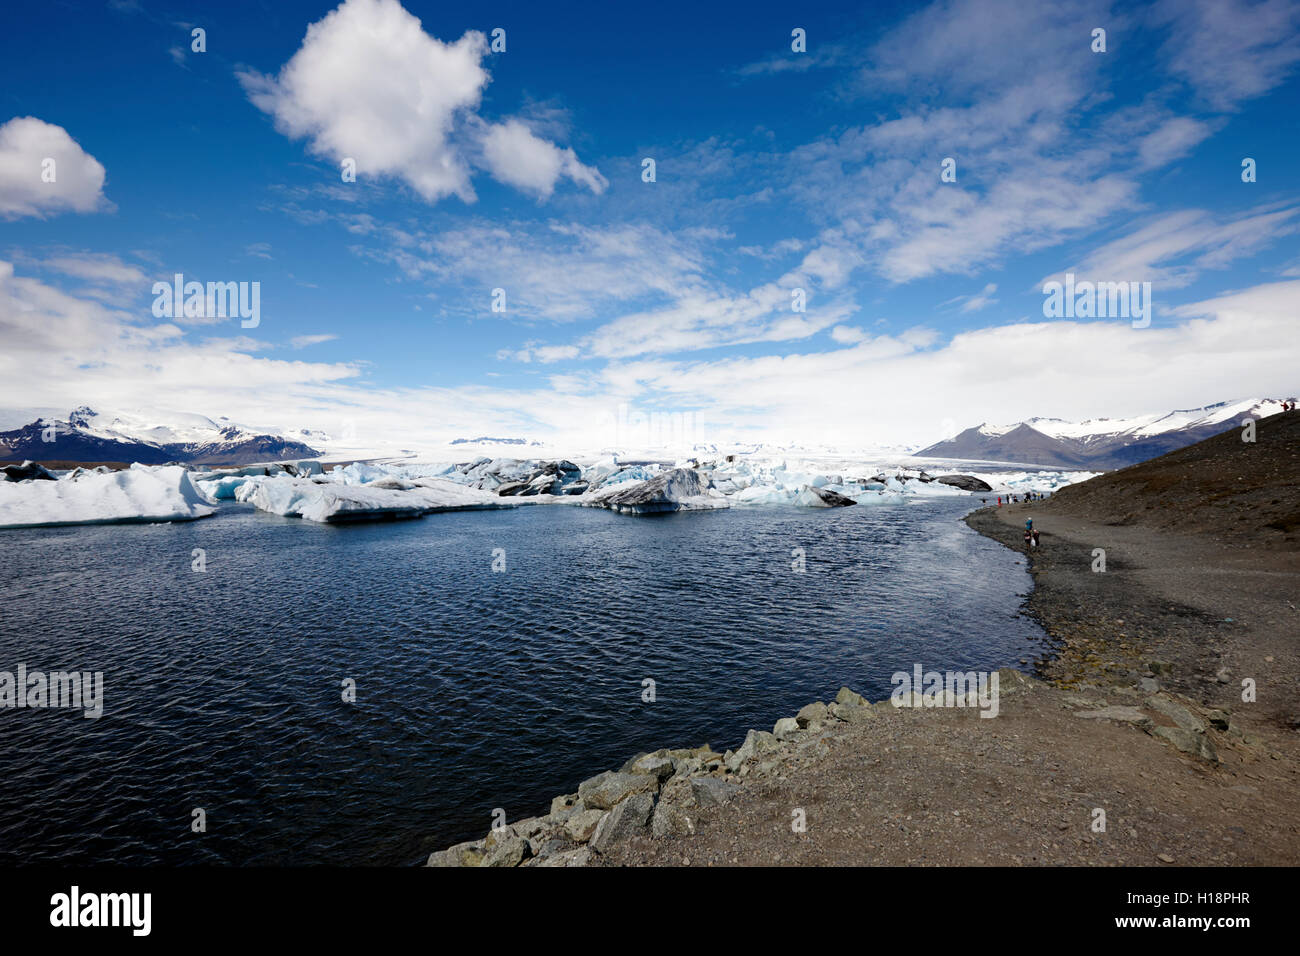 moraine and waters edge at Jokulsarlon glacial lagoon Iceland - Stock Image